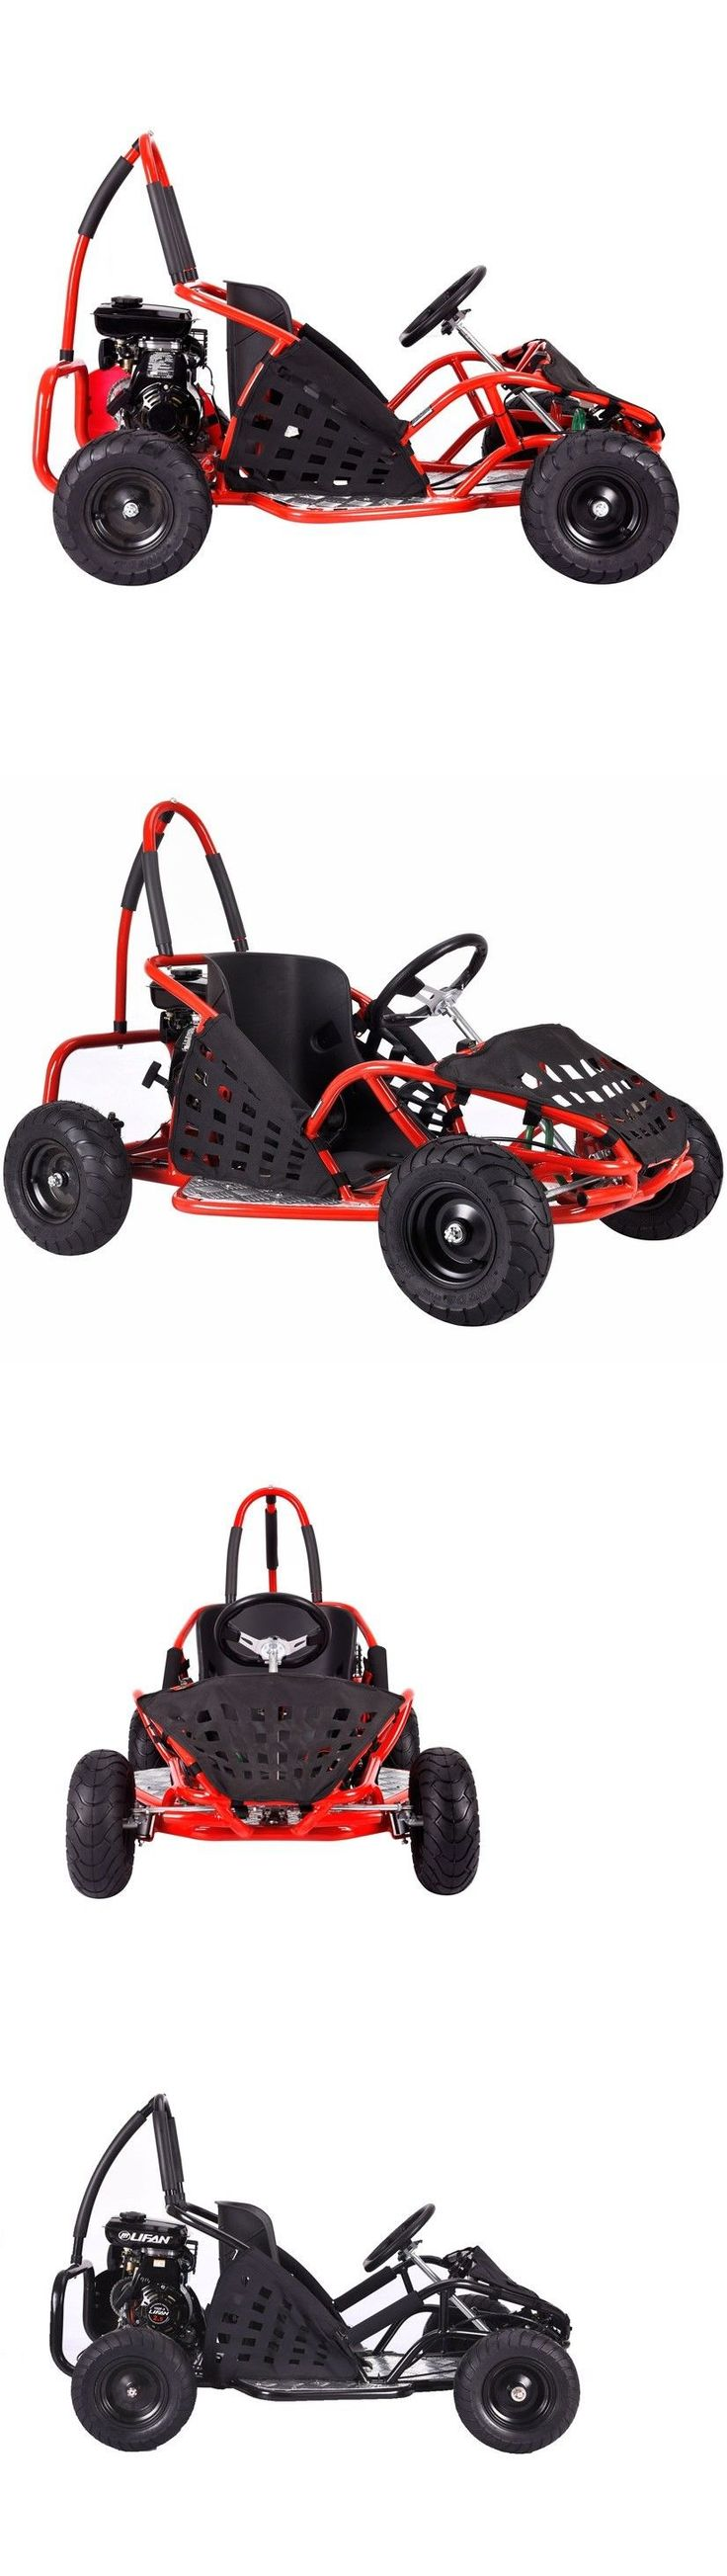 Other Go-Karts Recreational 40152: Go-Bowen 79Cc 2.5Hp 4-Stroke Off-Road Gas Go Kart High Performanc (Epa Approved) BUY IT NOW ONLY: $679.95